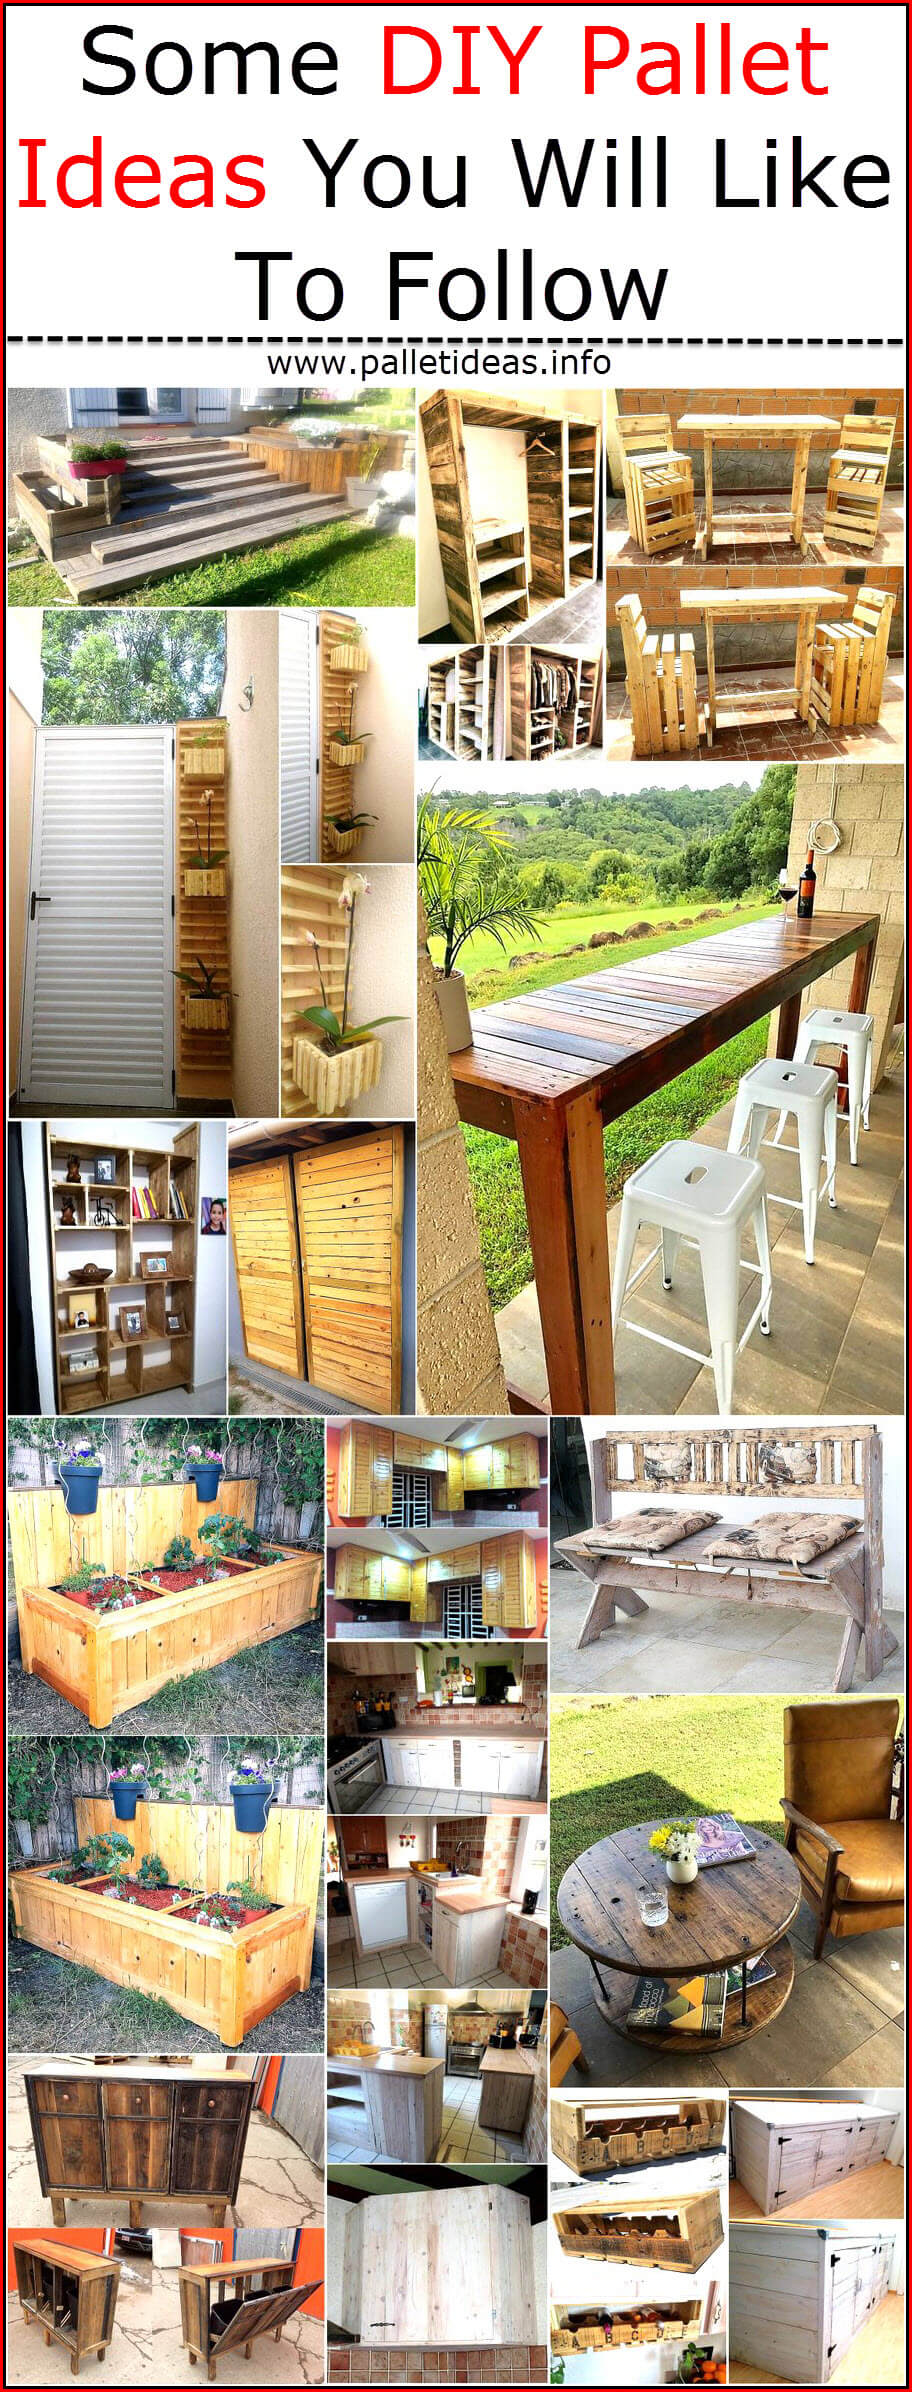 Some Diy Pallet Ideas You Will Like To Follow Pallet Ideas